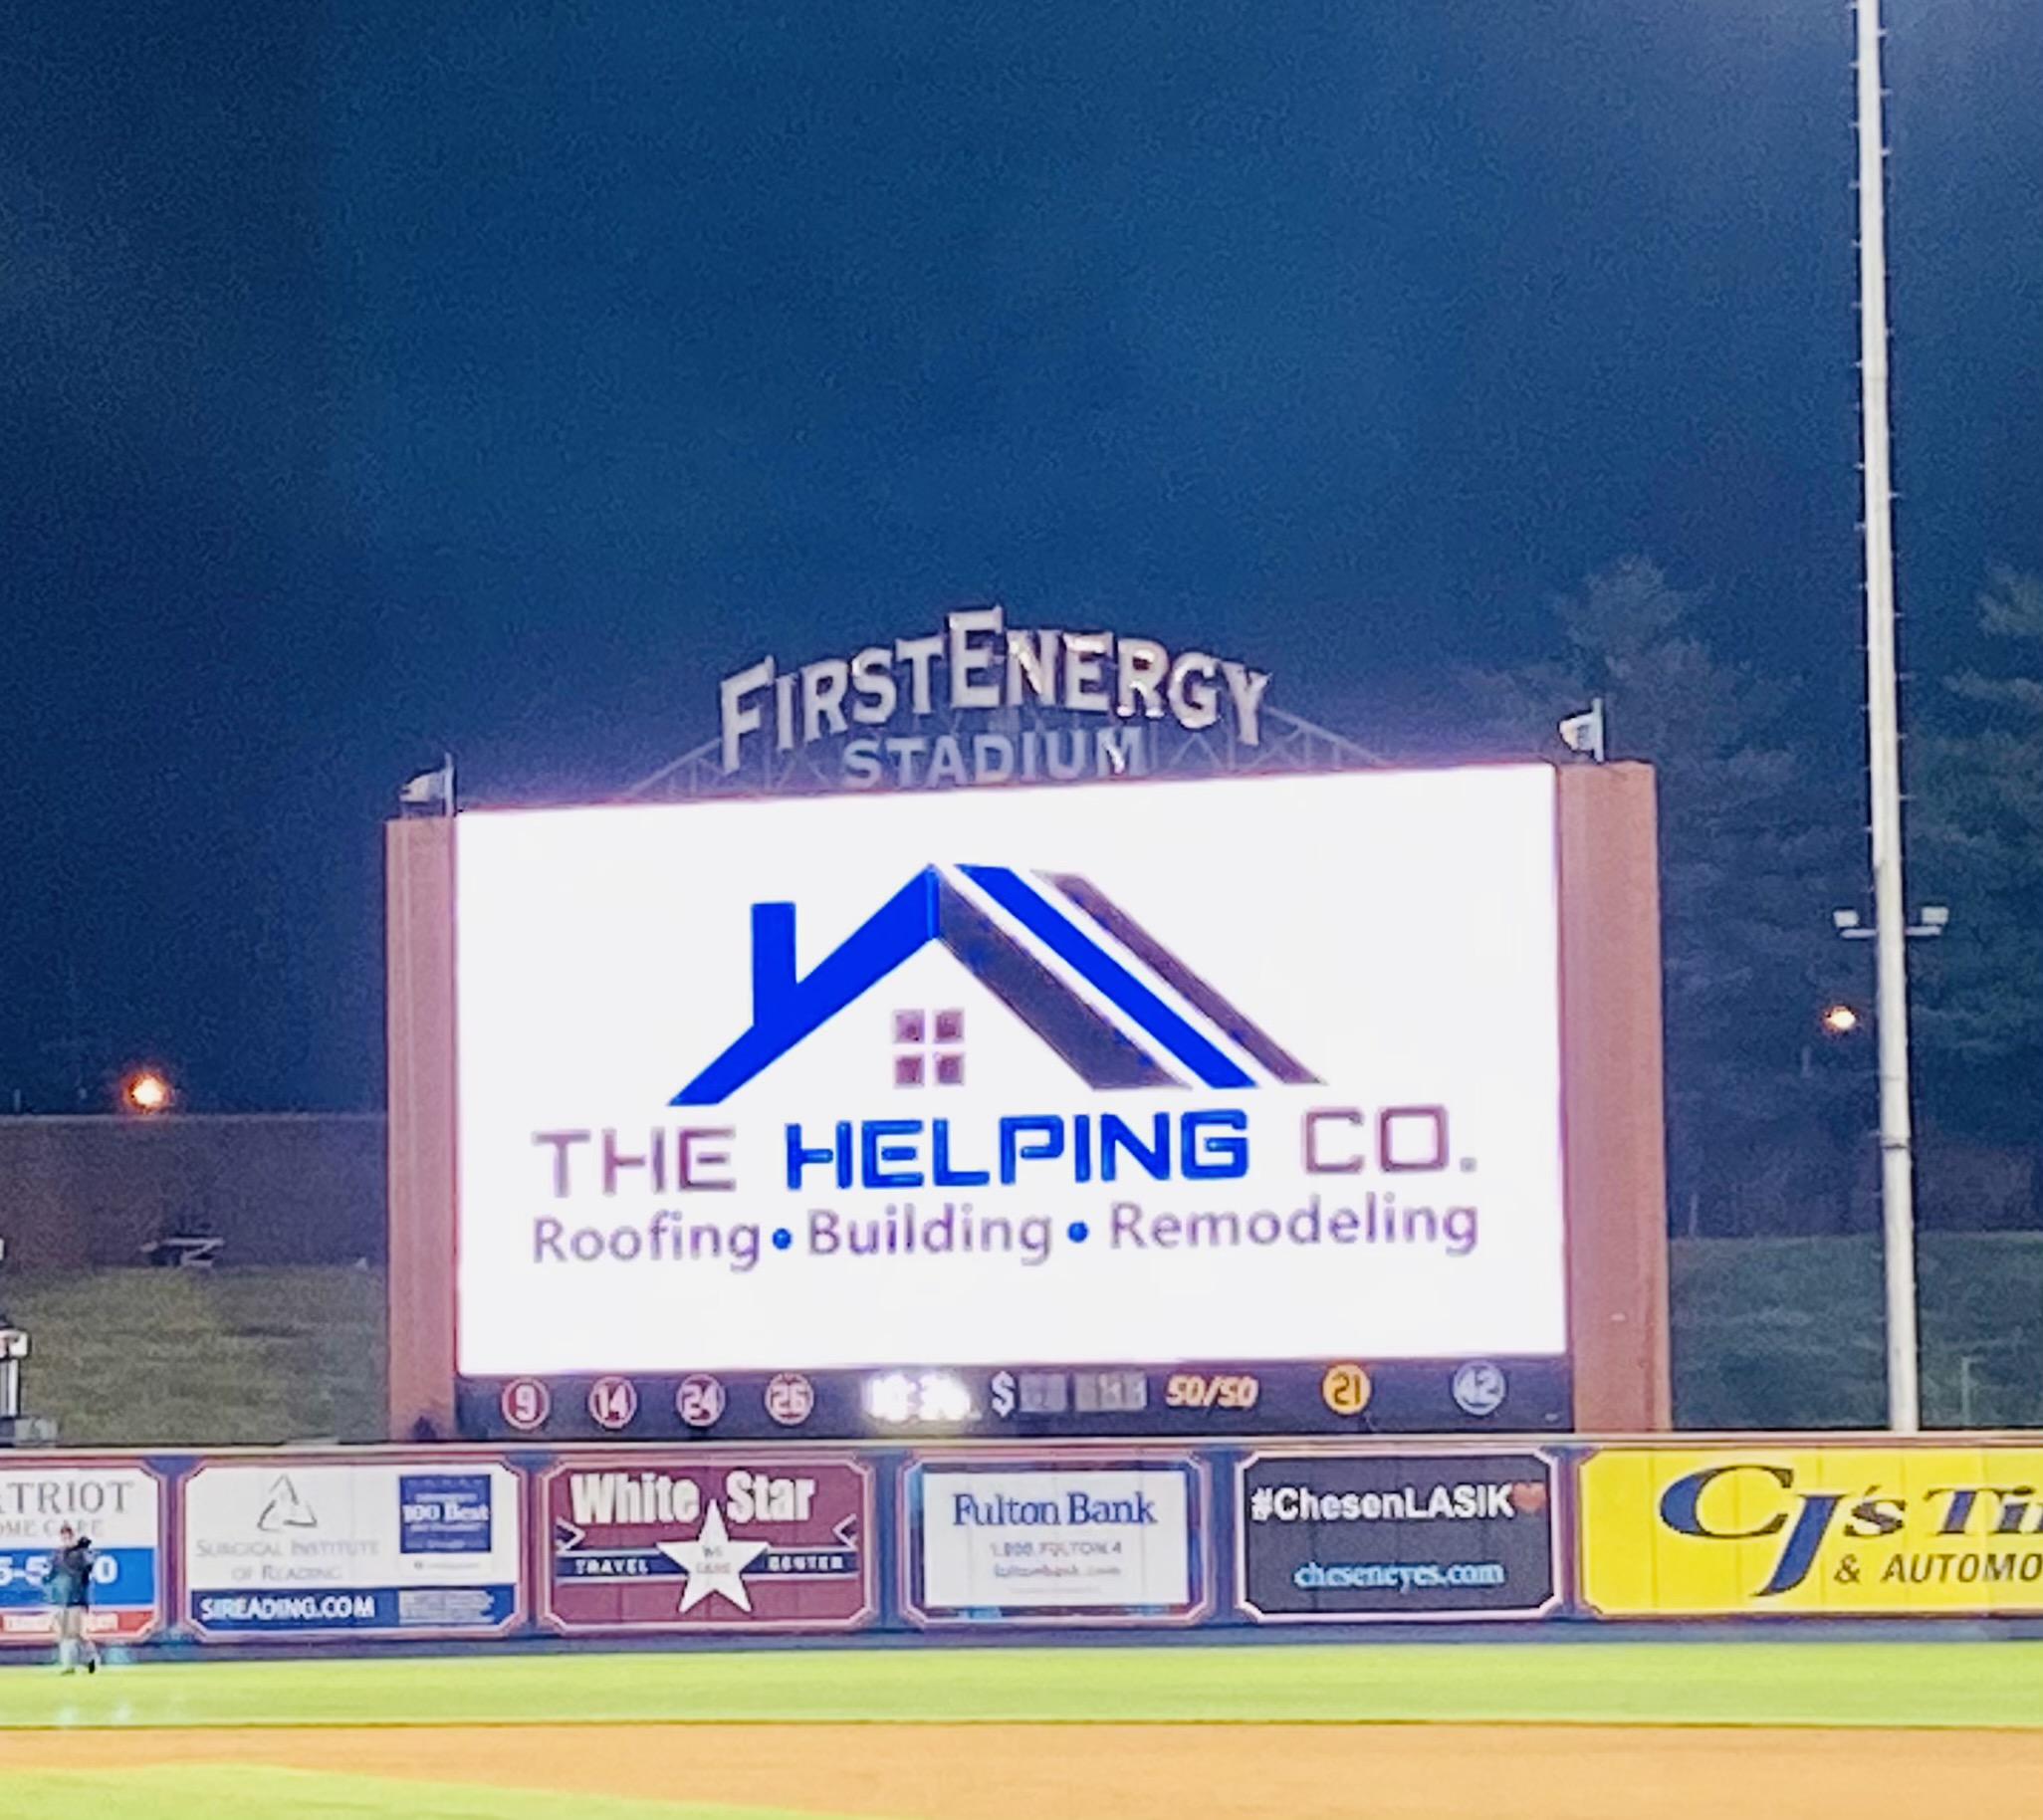 The Helping Company | First Energy Stadium | Fightin Phils | Community Outreach